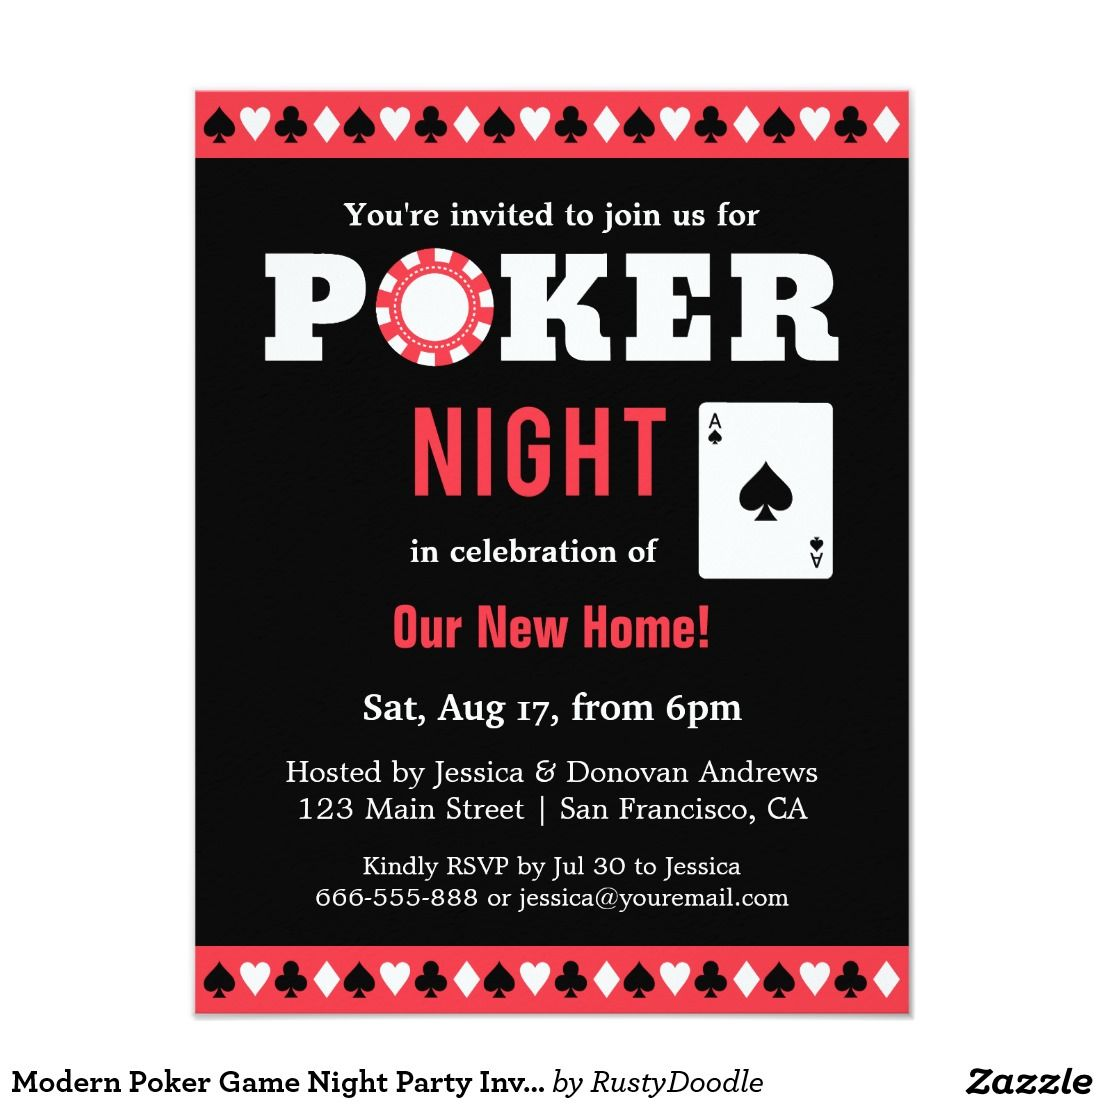 Modern Poker Game Night Party Invitations | Unique! Divorce! Fiestas ...